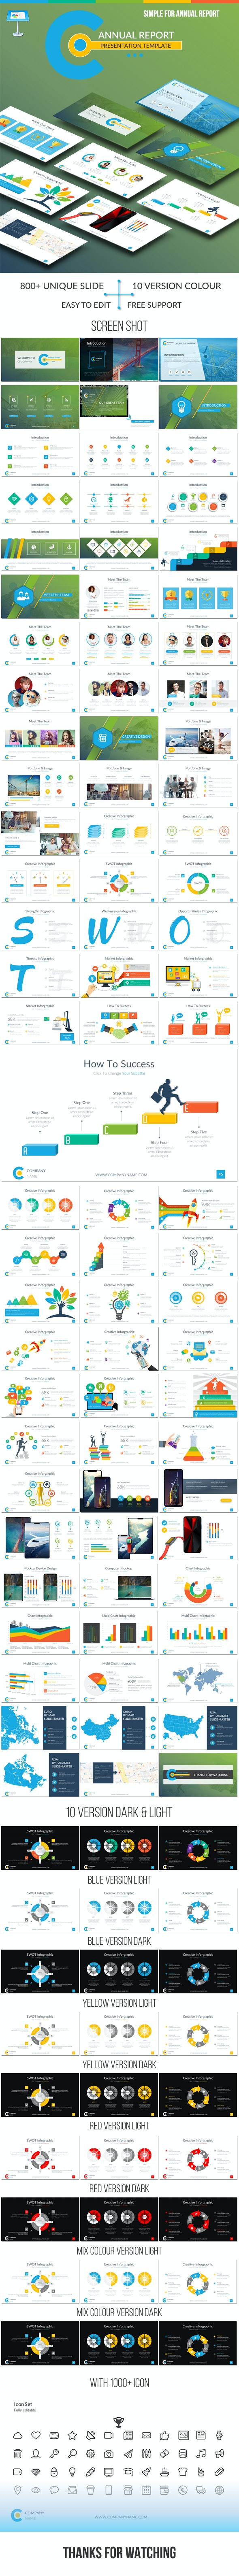 Annual Report 2018 - Business Keynote Templates